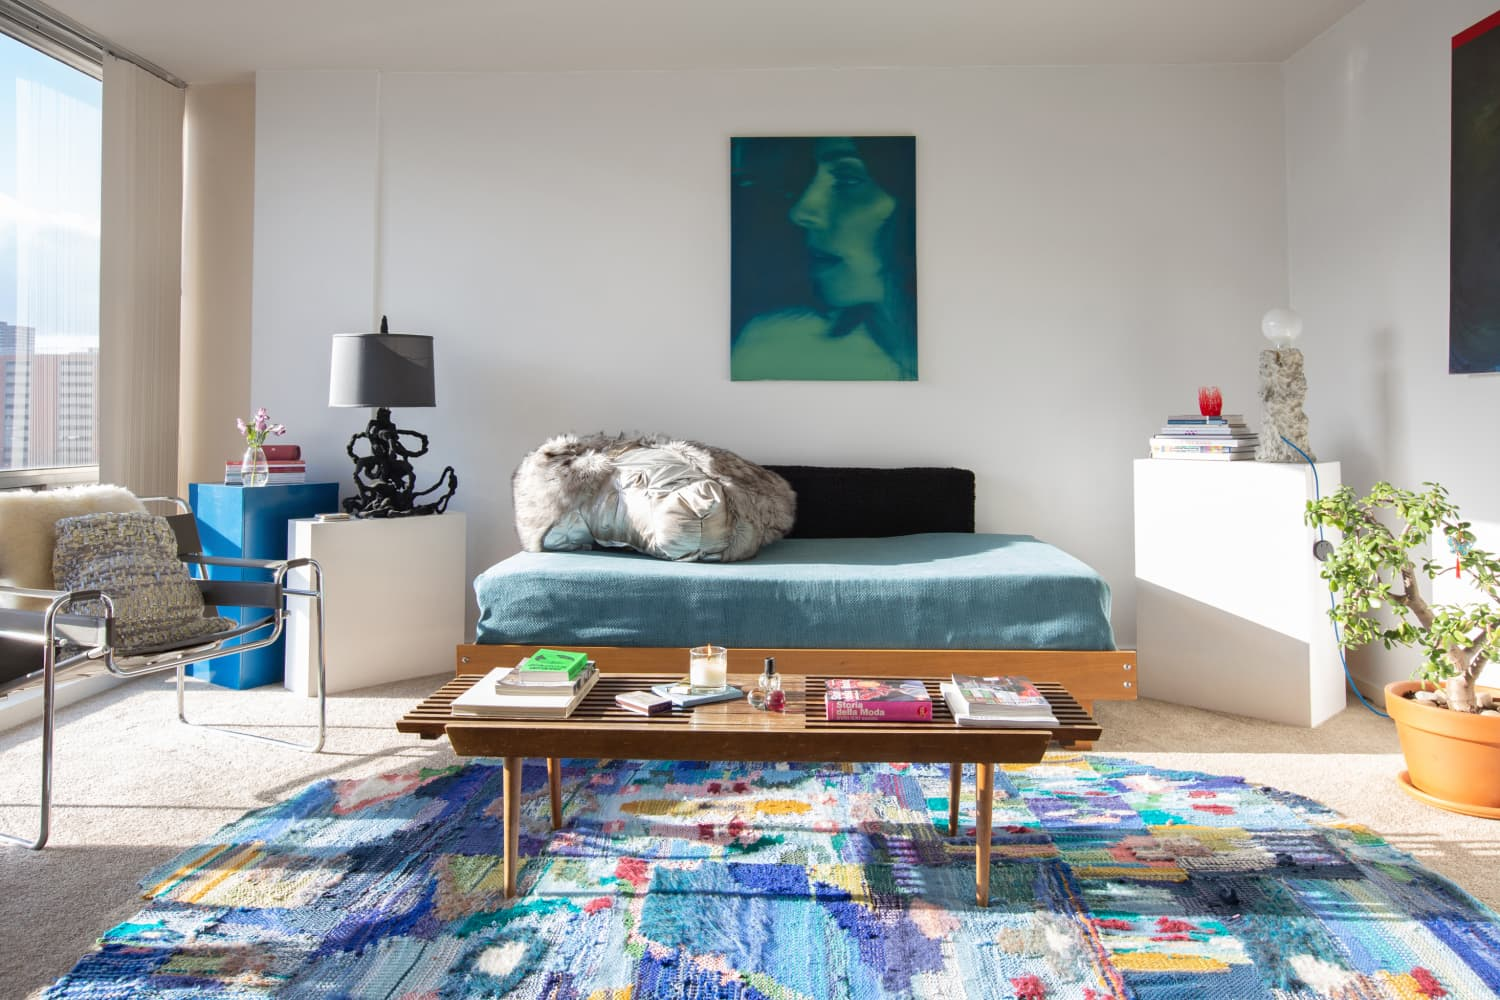 A 550-Square-Foot Studio Proves Life Is Too Short for Boring Apartments